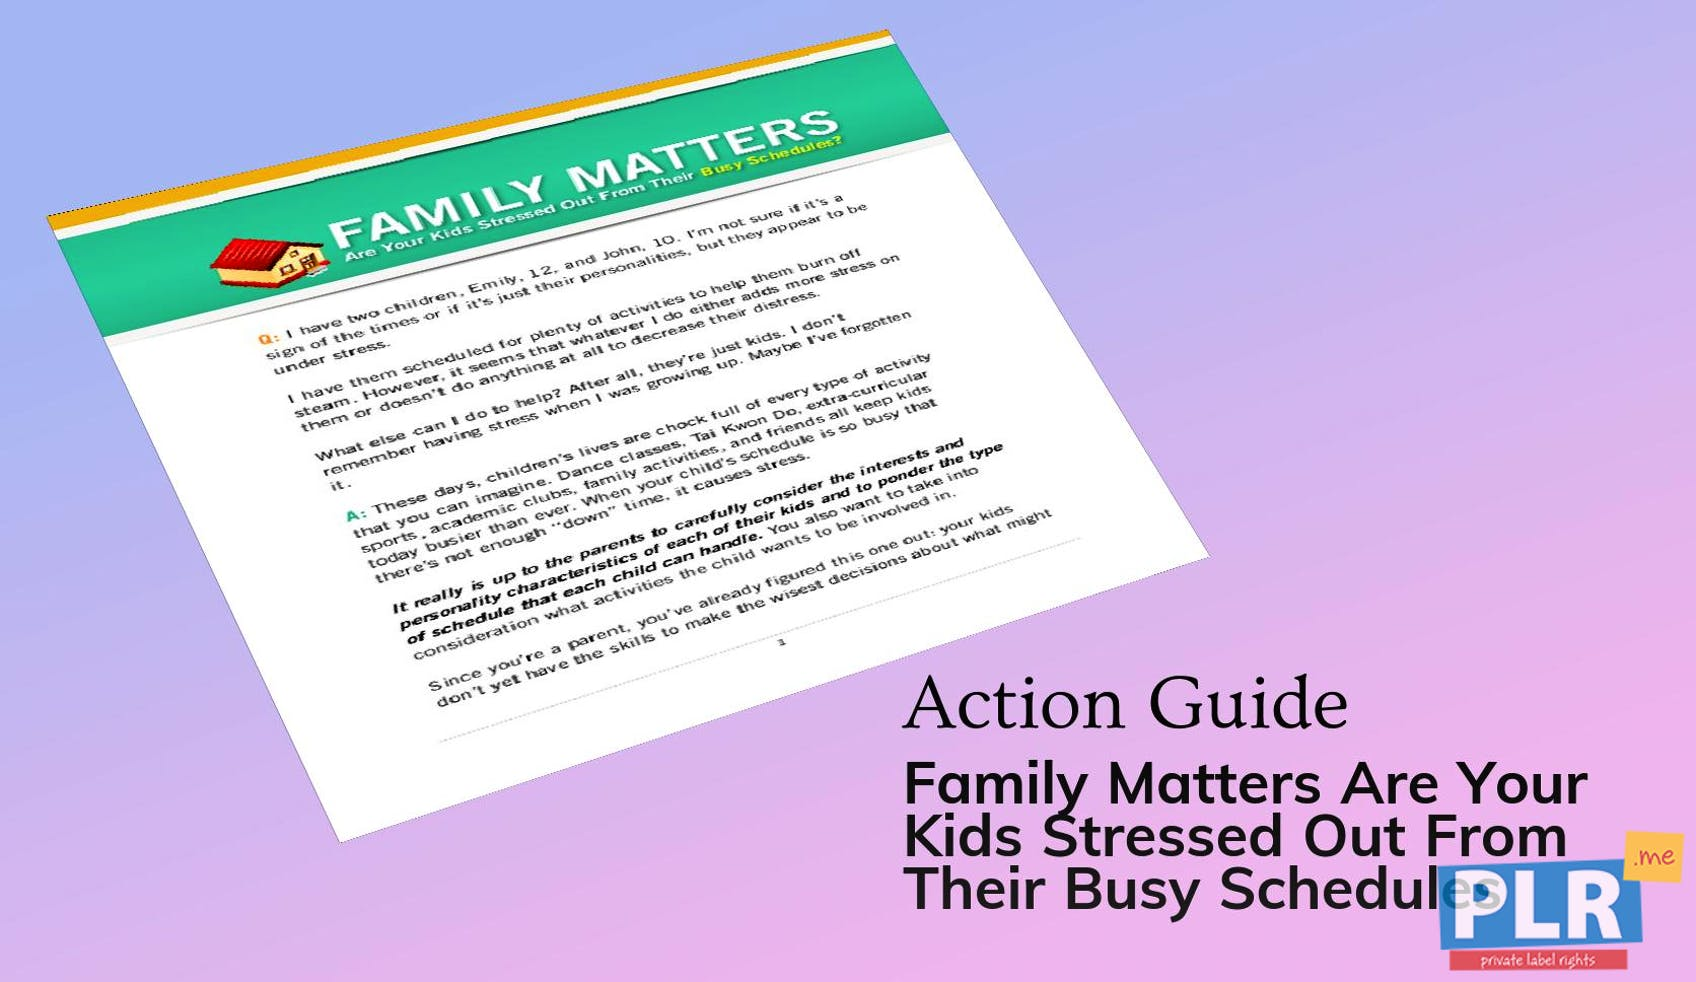 Family Matters Are Your Kids Stressed Out From Their Busy Schedules